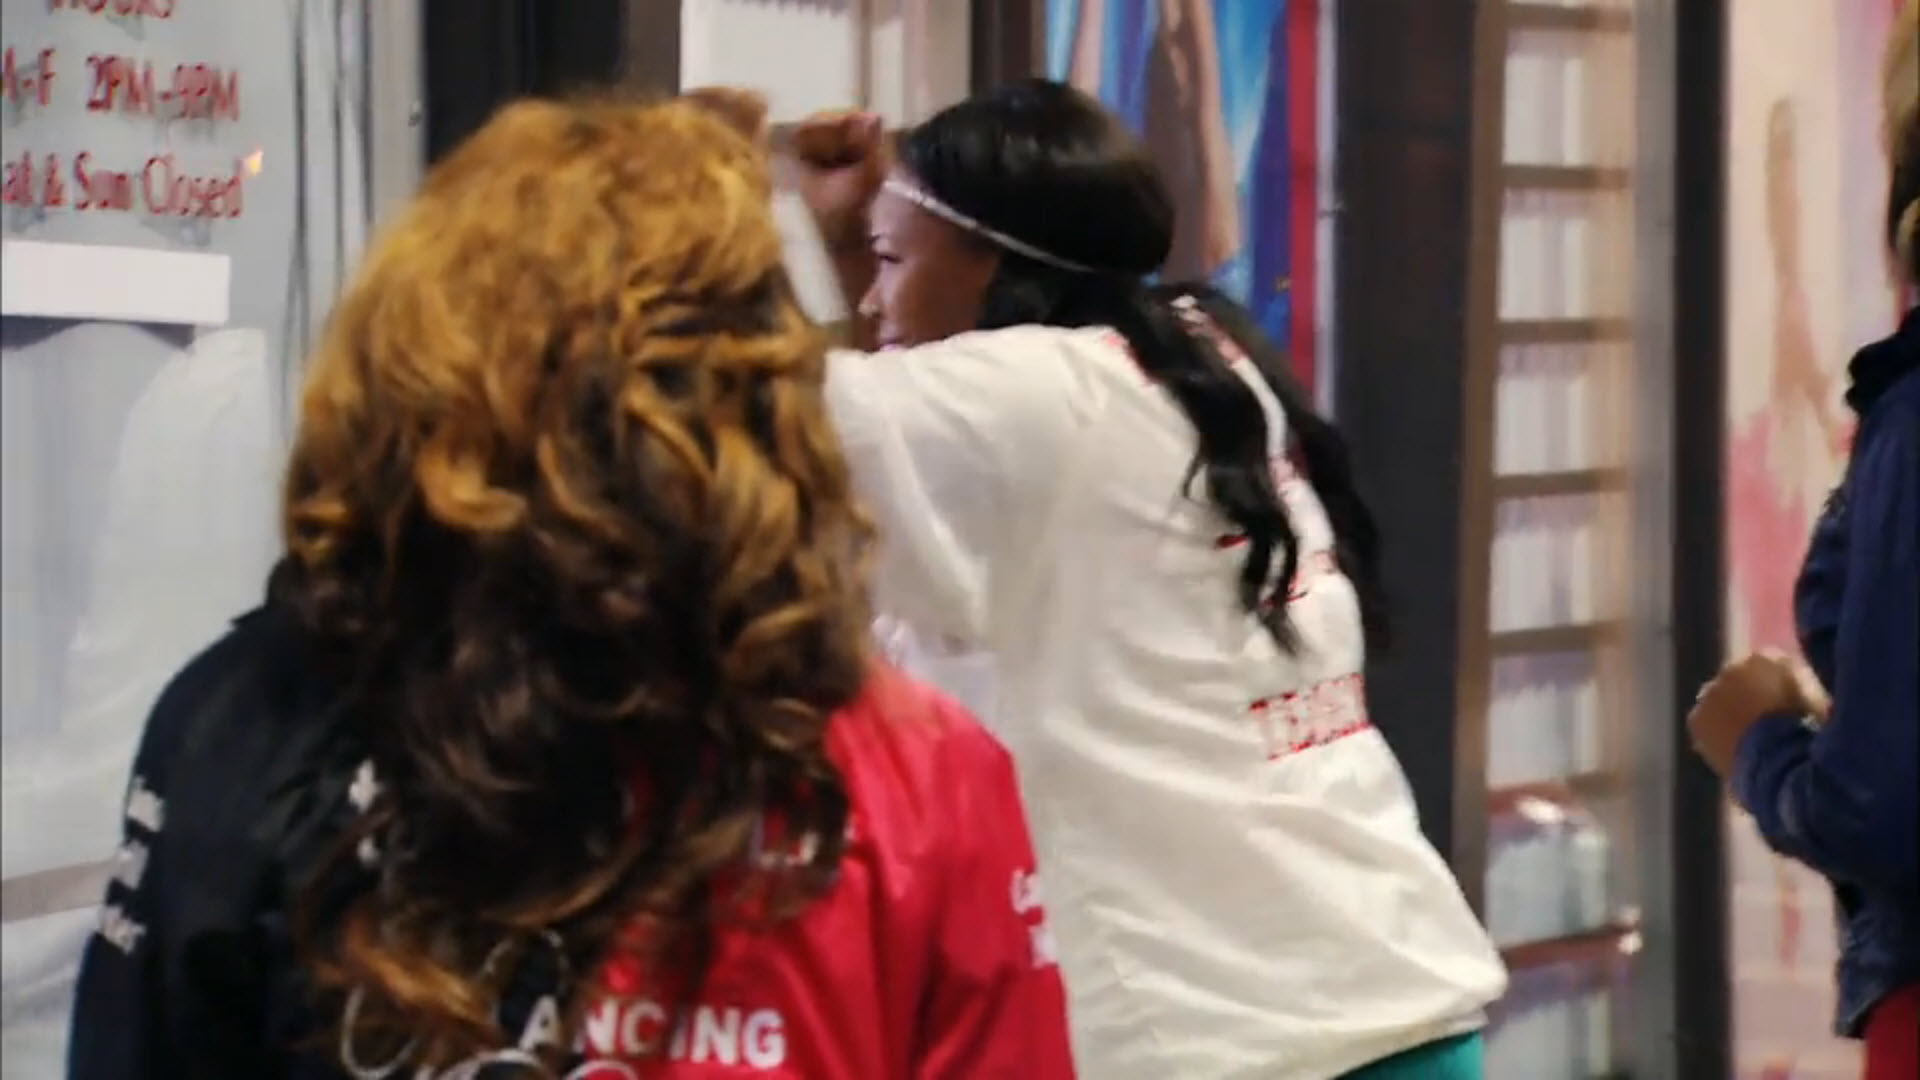 tawantza banging on miss ds door in bring it season 3 2015